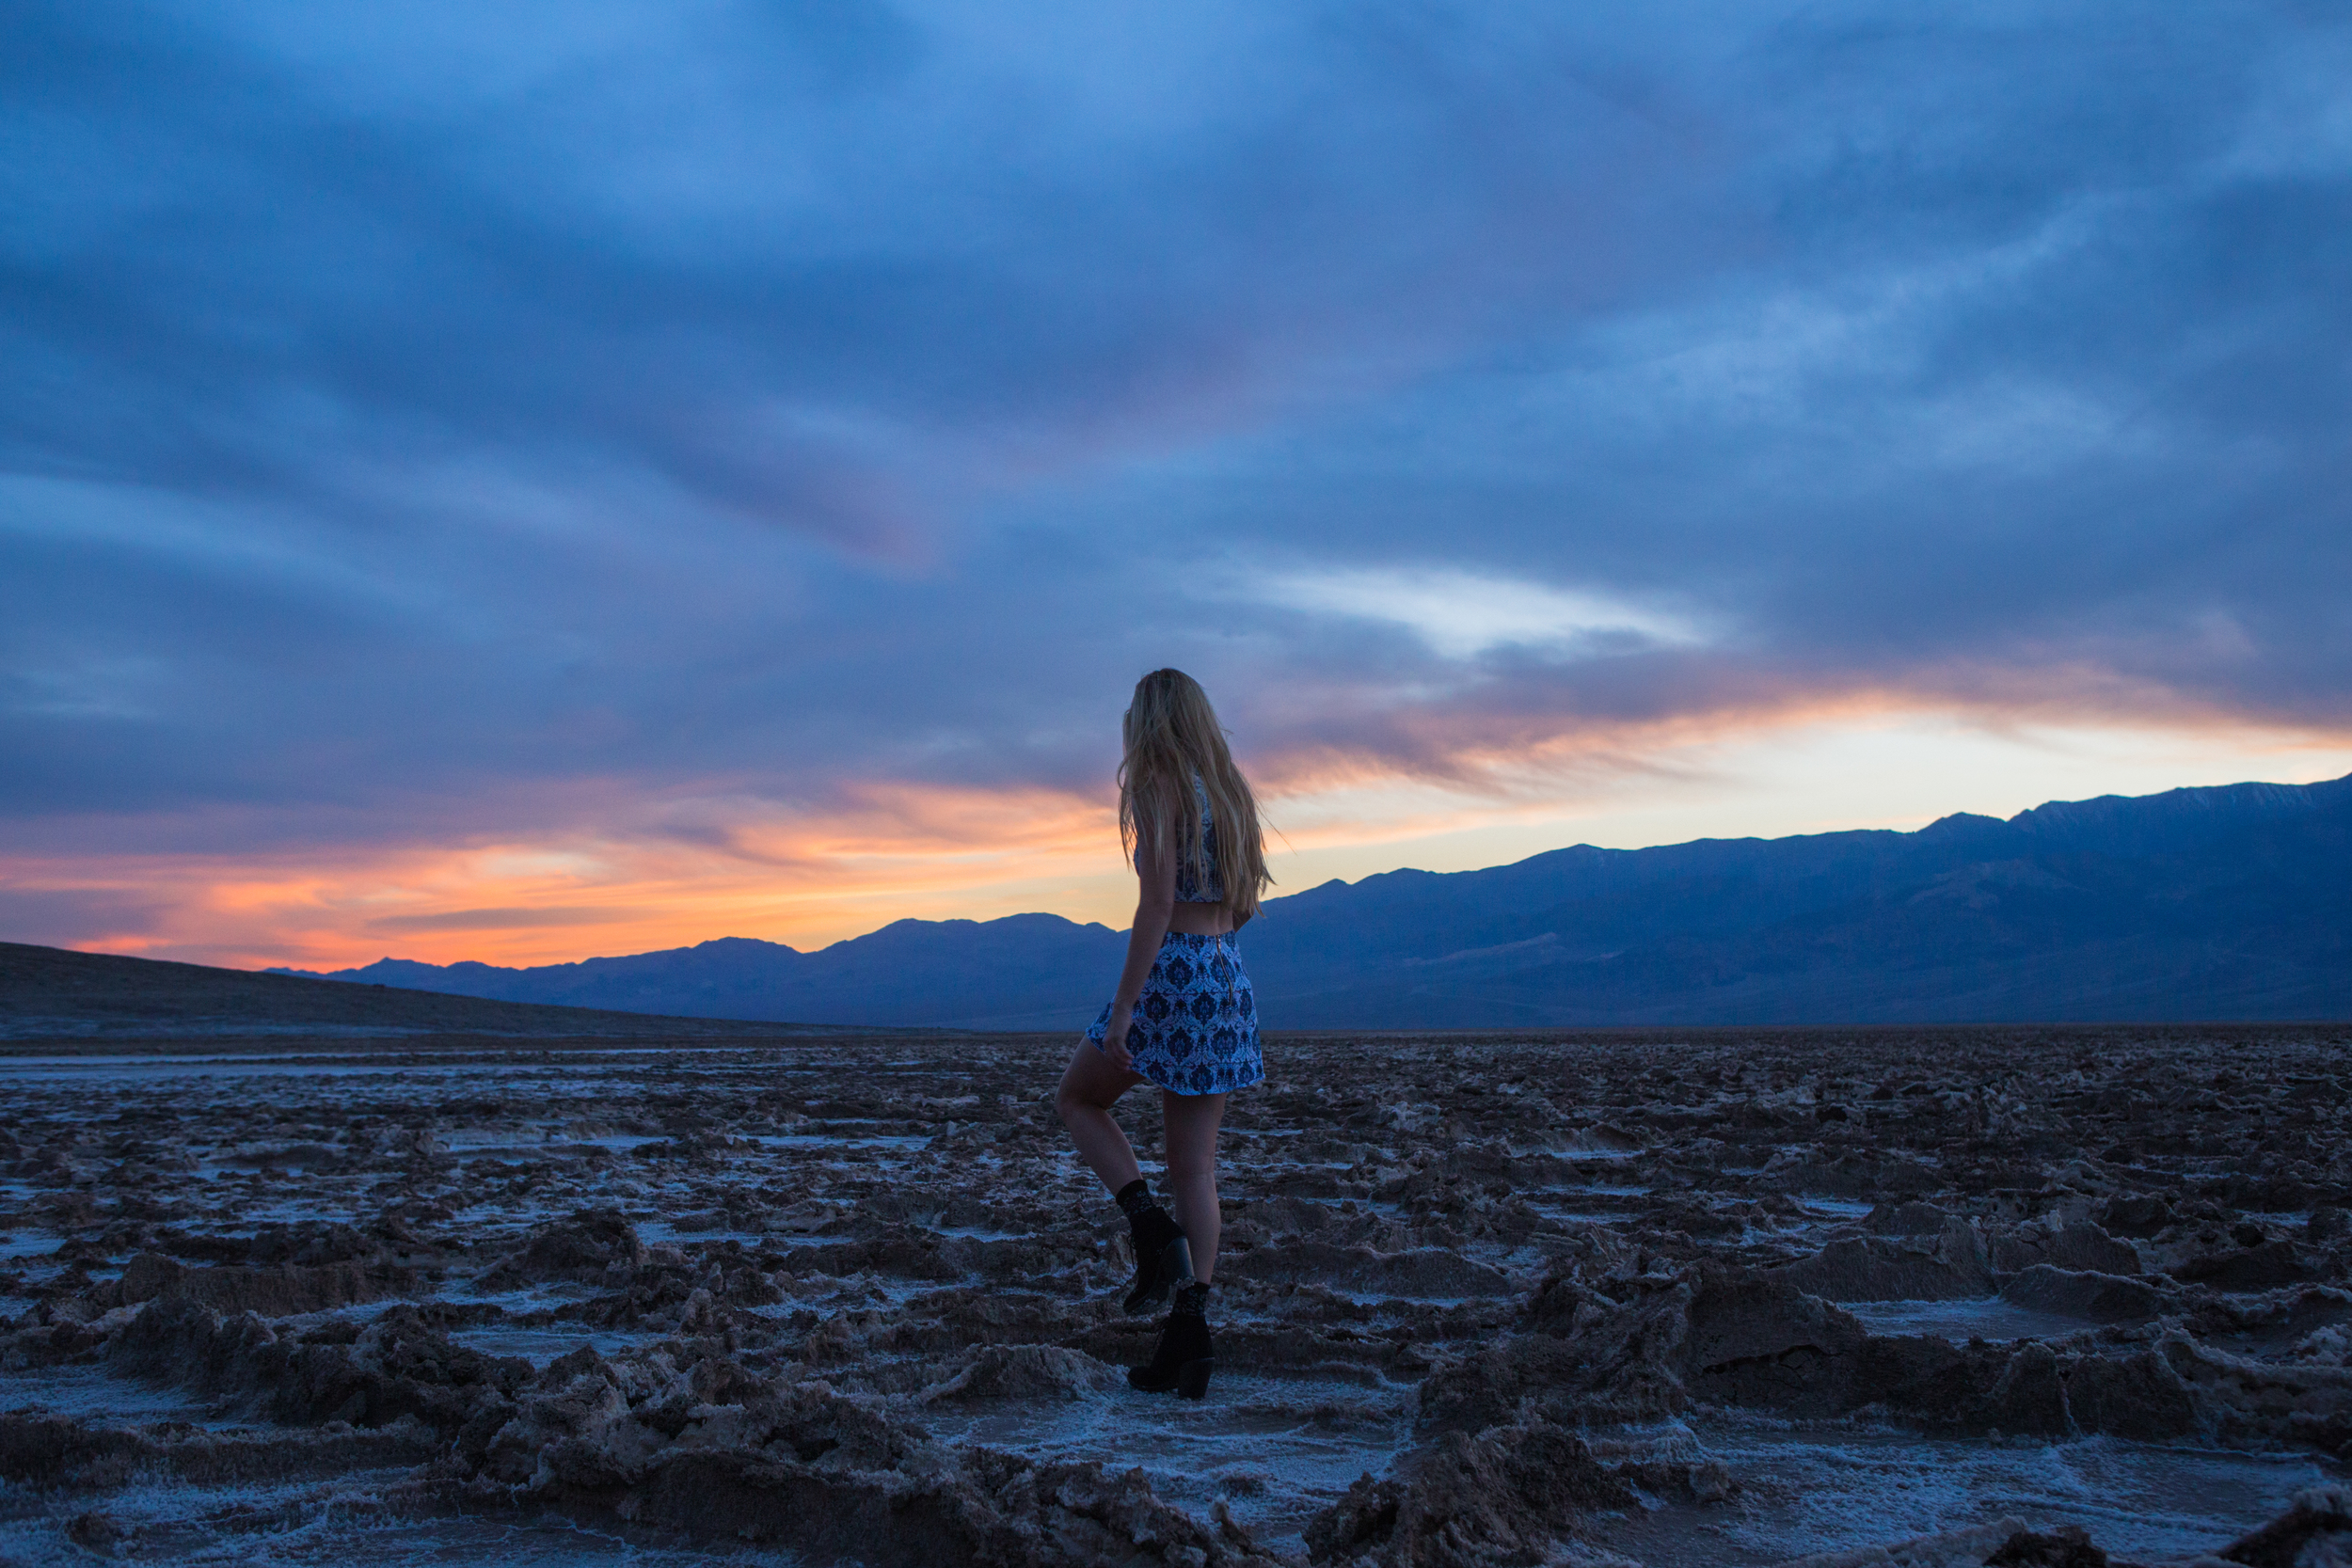 AstroBandit_JordanRose_BadwaterBasin_DeathValley_Sunset_MotelRocks_1.jpg